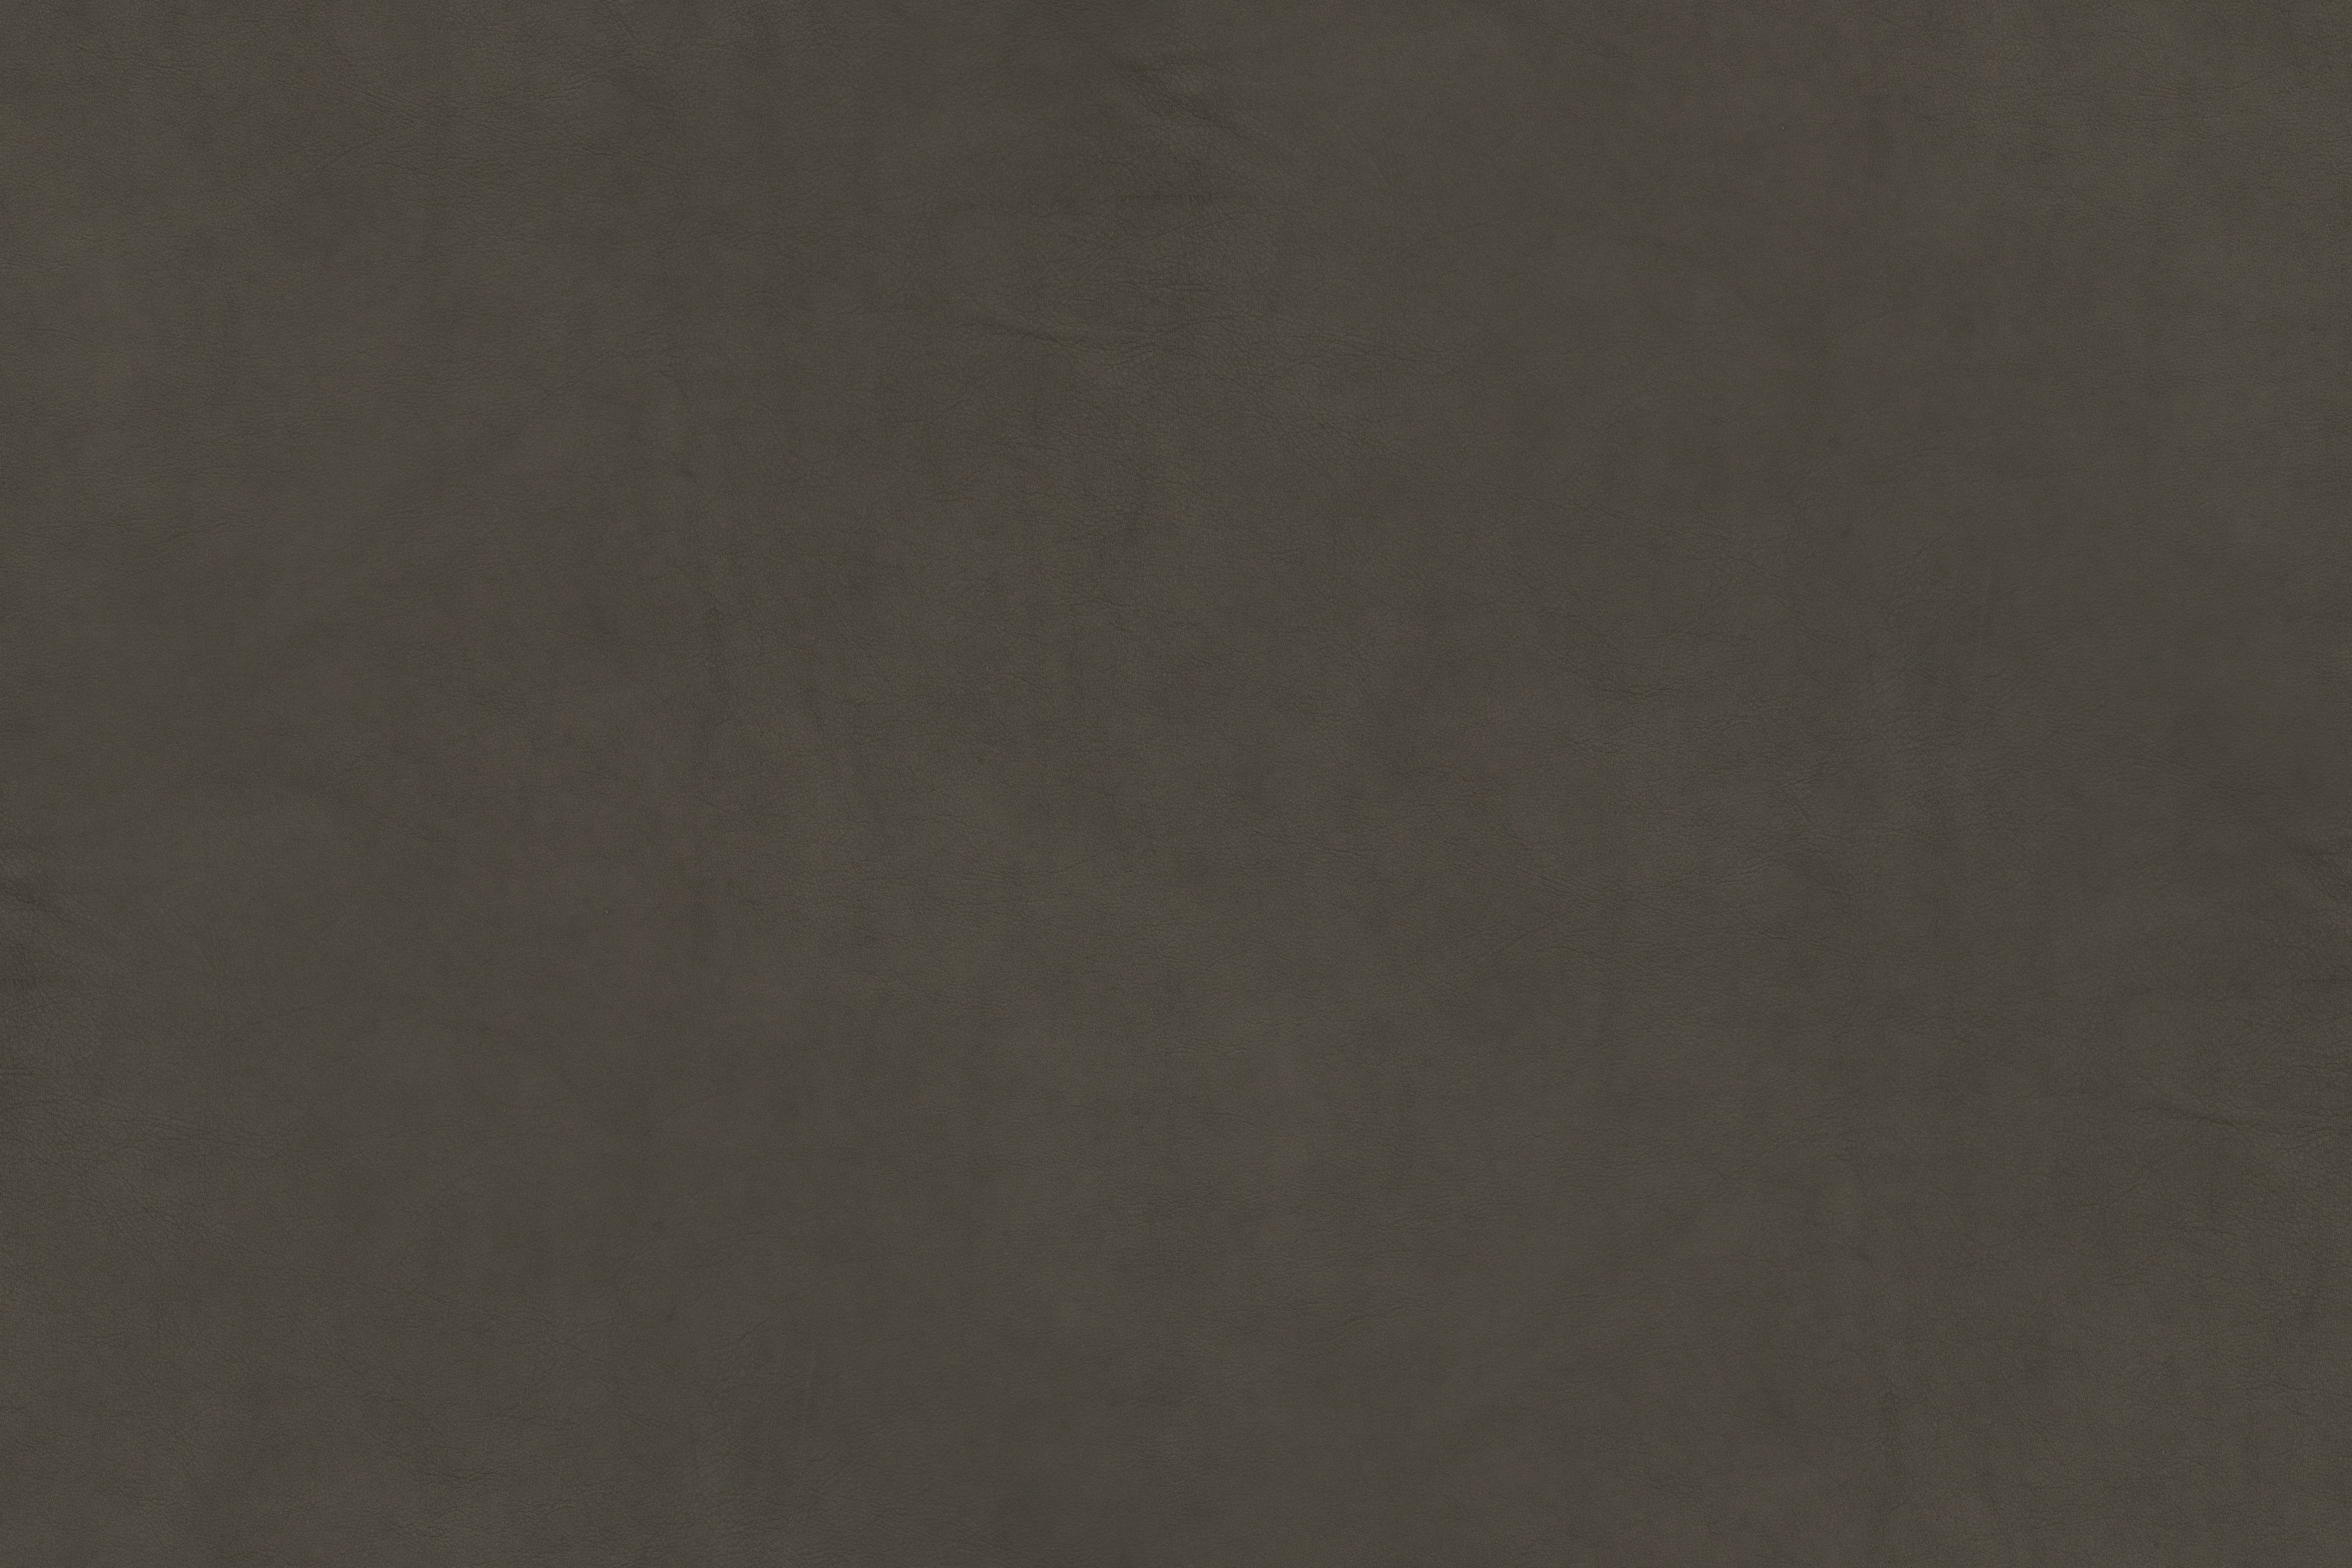 campo-series-grey-leather-texture